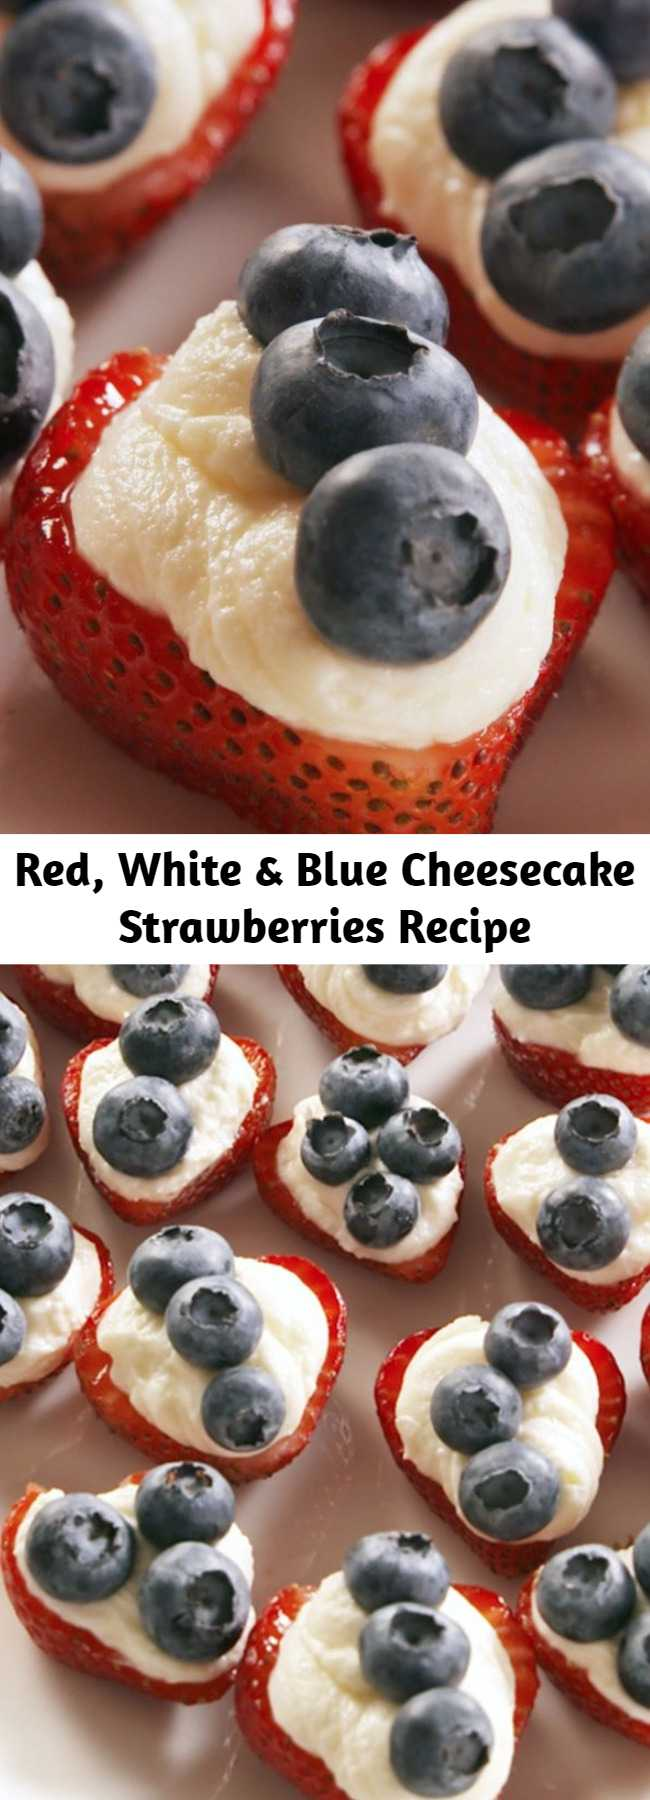 Red, White & Blue Cheesecake Strawberries Recipe - When you're looking for an easy July 4th dessert, look no further than these adorable — and, ugh, so addictive — red, white, and blue strawberries. The slightly sweet cheesecake filling is the perfect complement to the berries. They might be better than watching the fireworks.